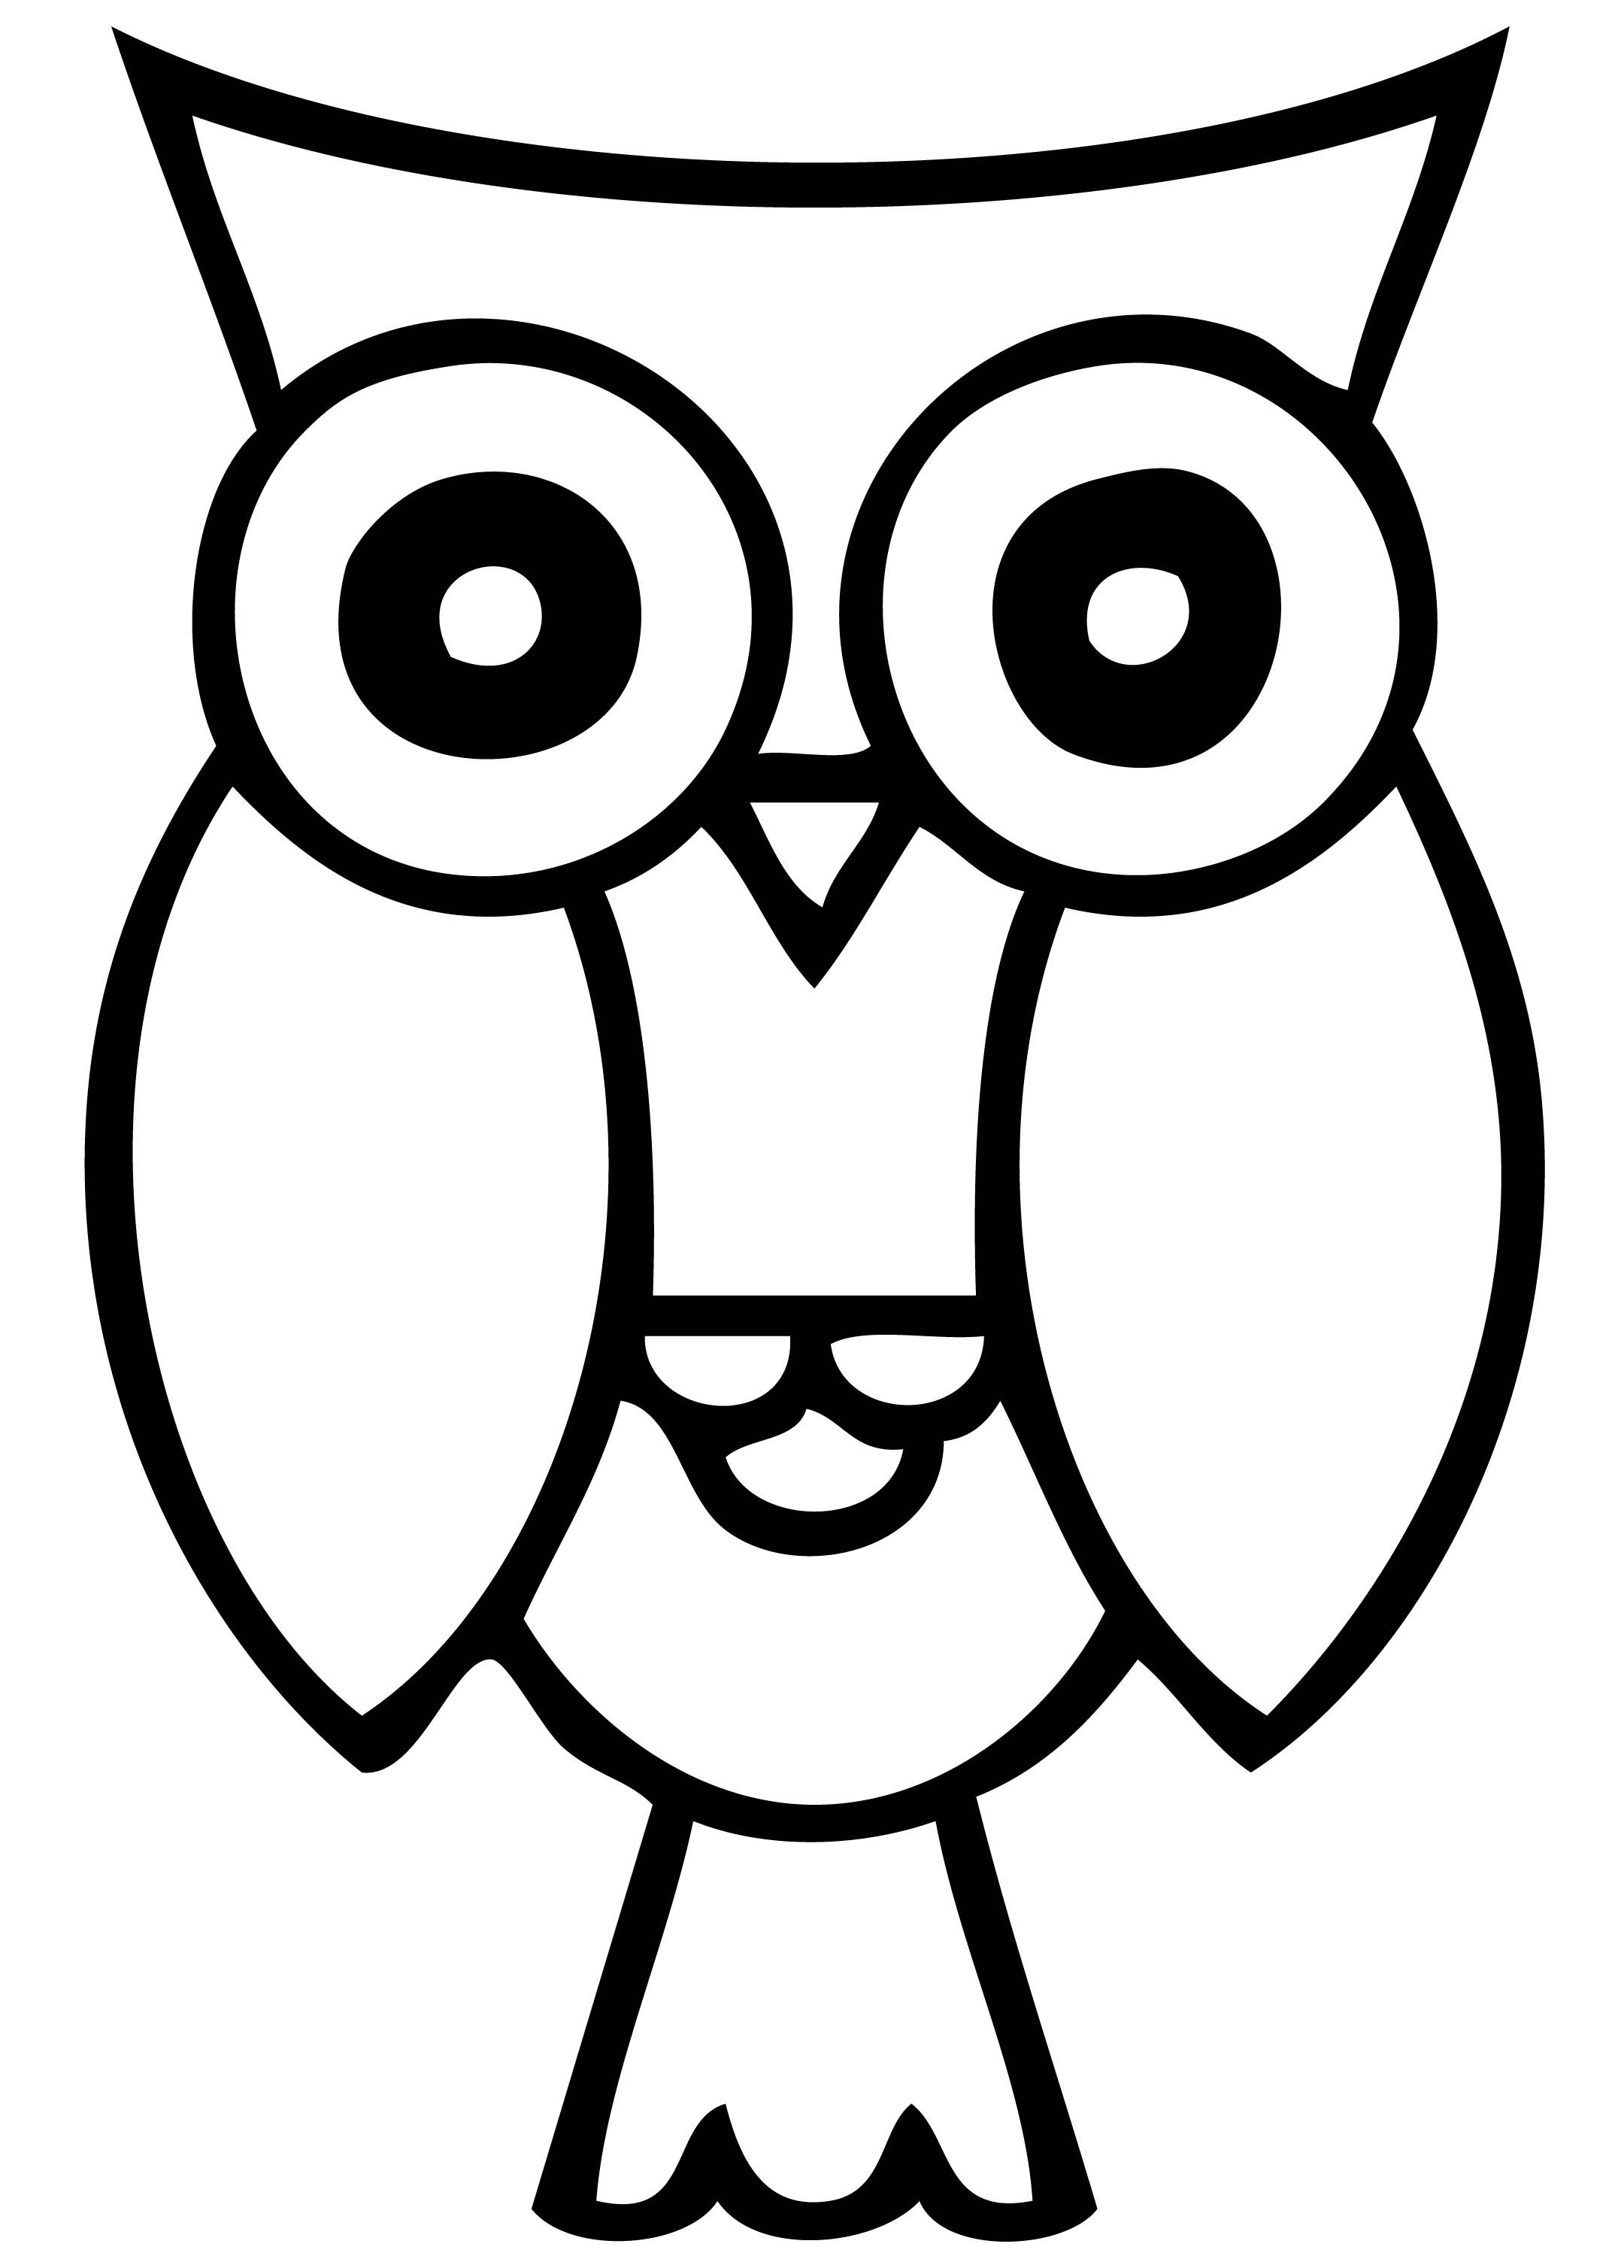 Download Free png Owl clipart black and white free.